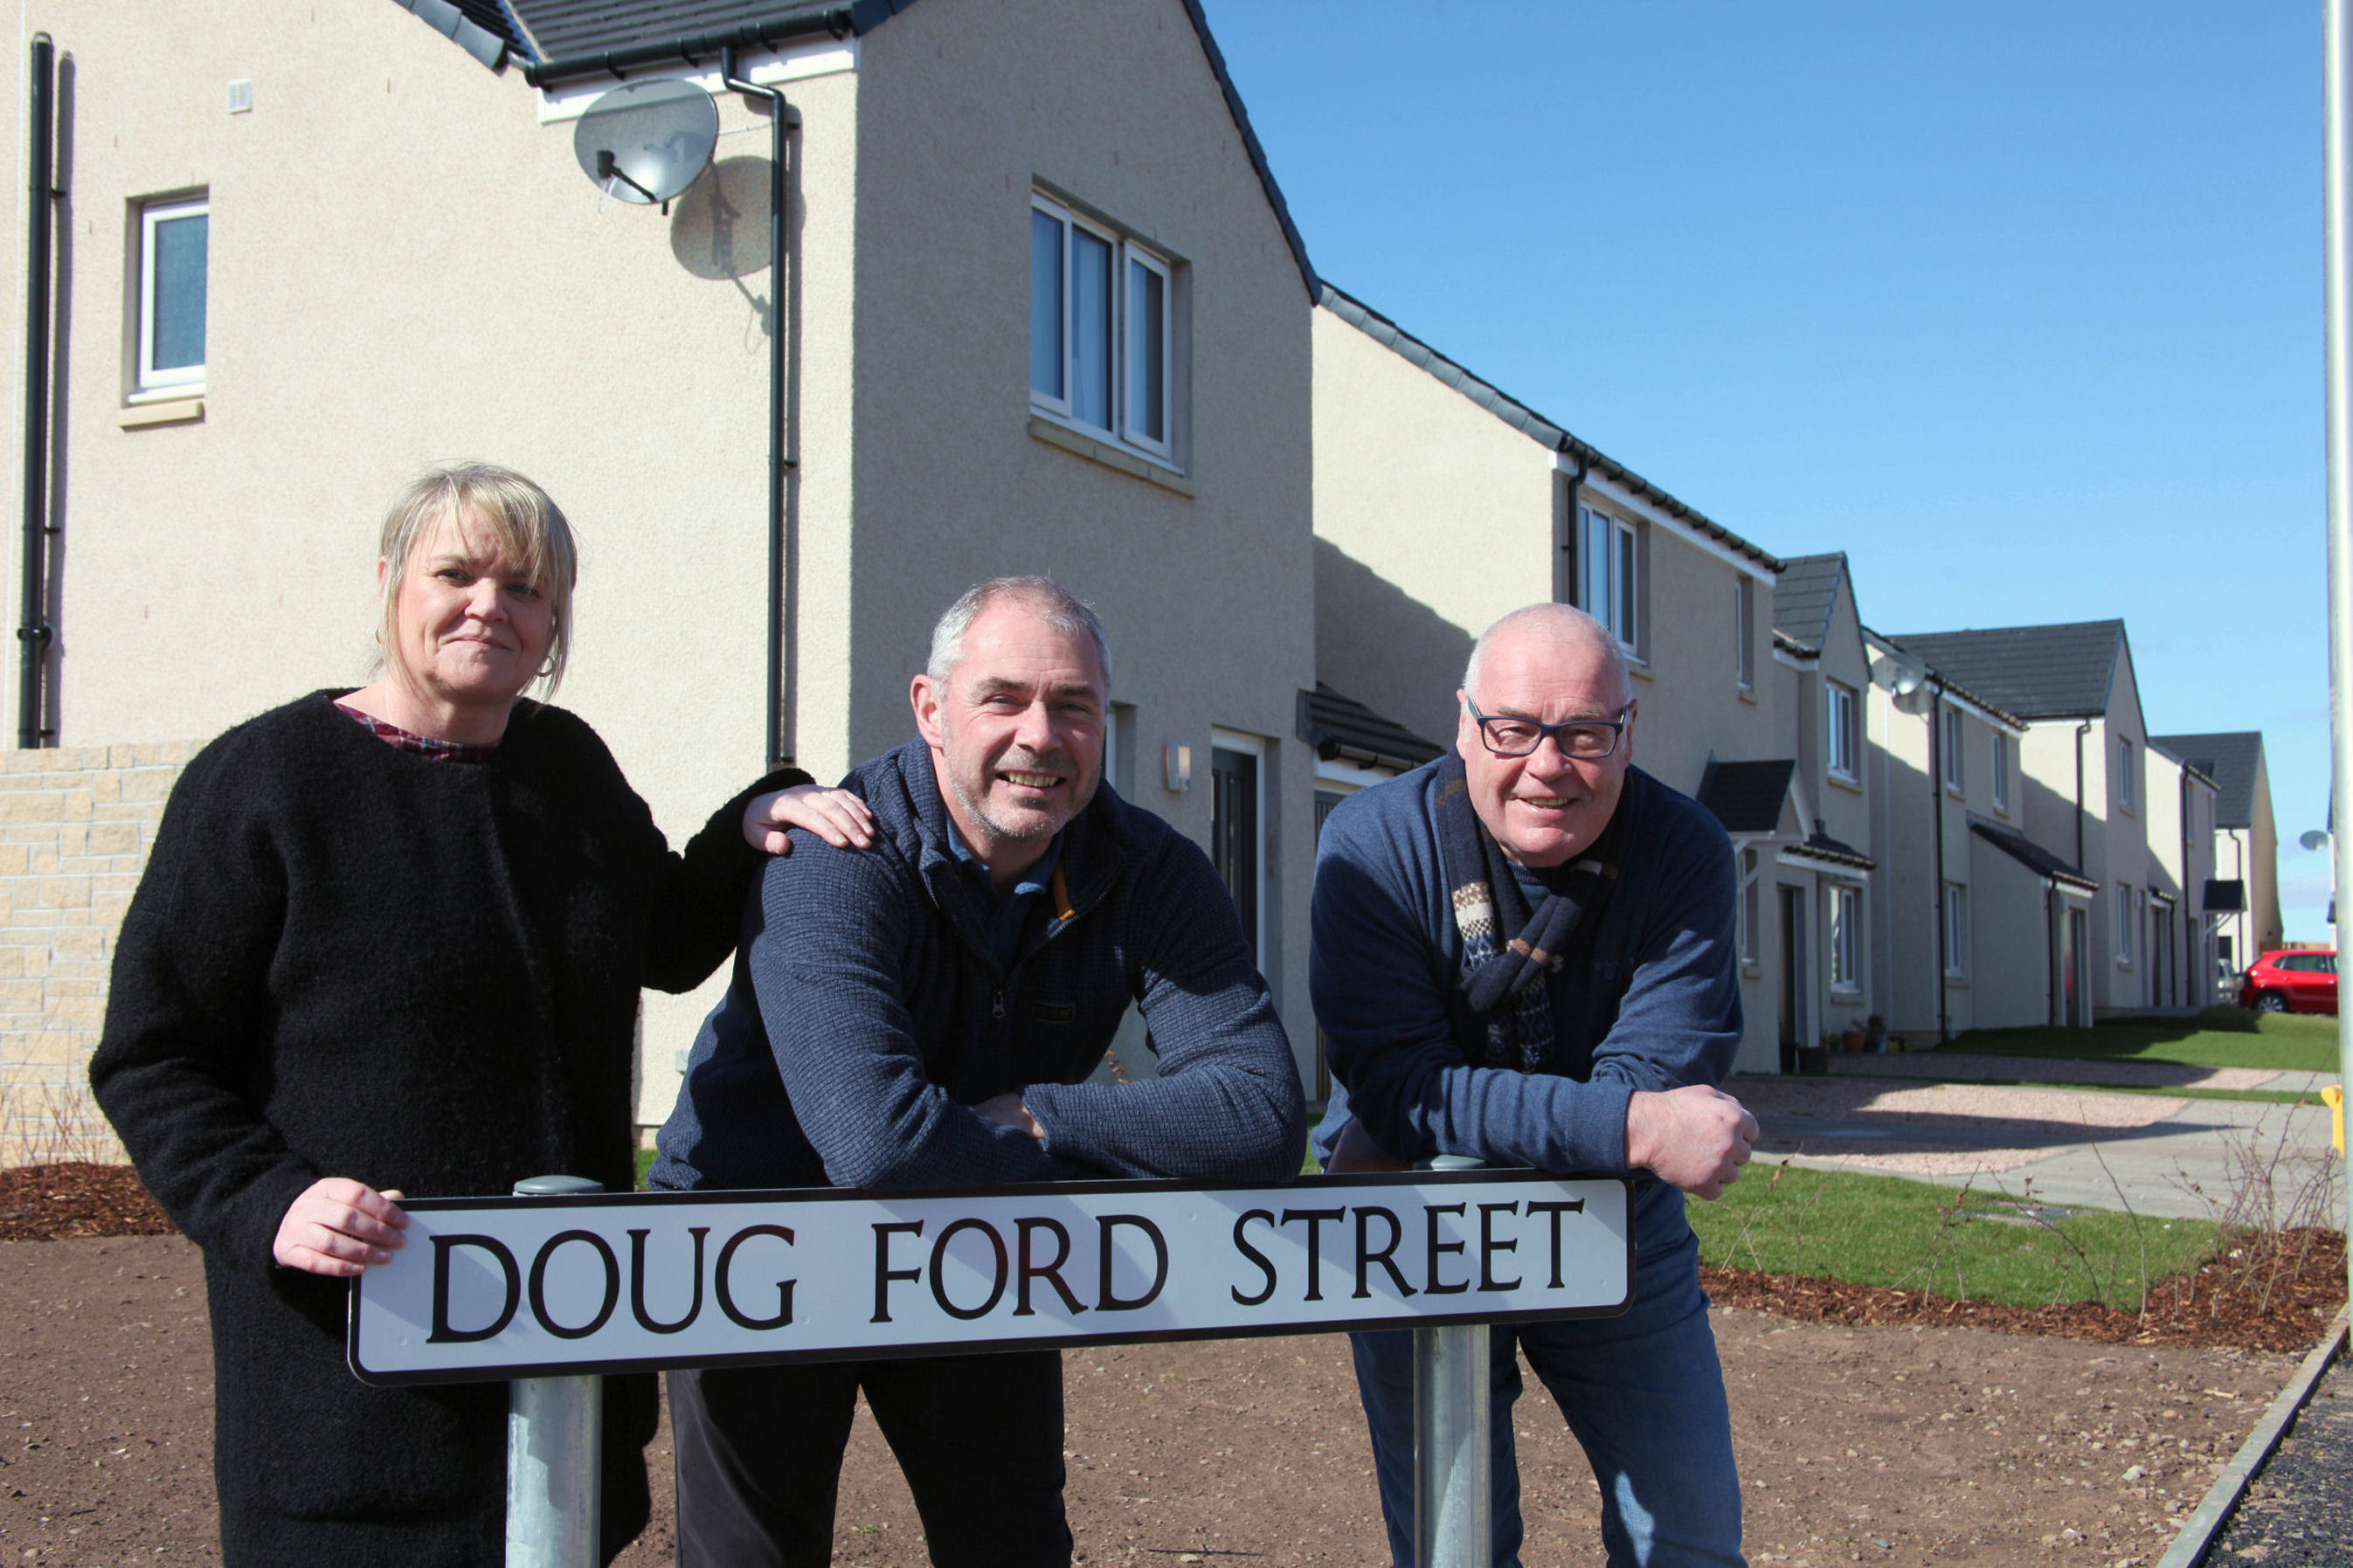 Diane Faulkner, Mark Ford and David Fairweather at the street.